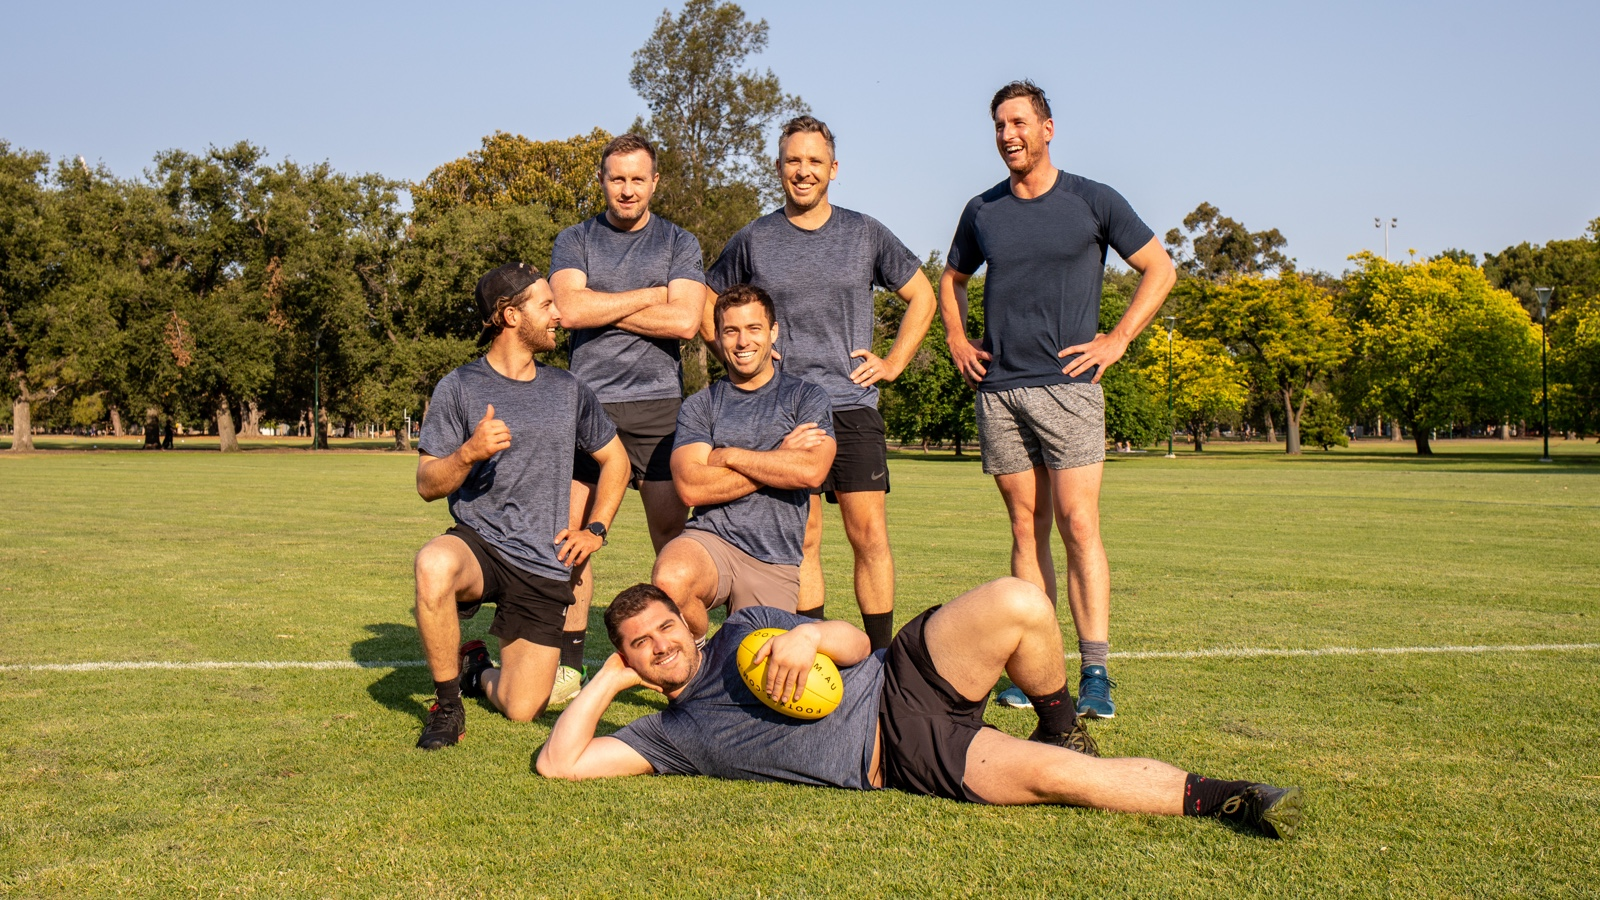 Group of footy 7s players in a team photo